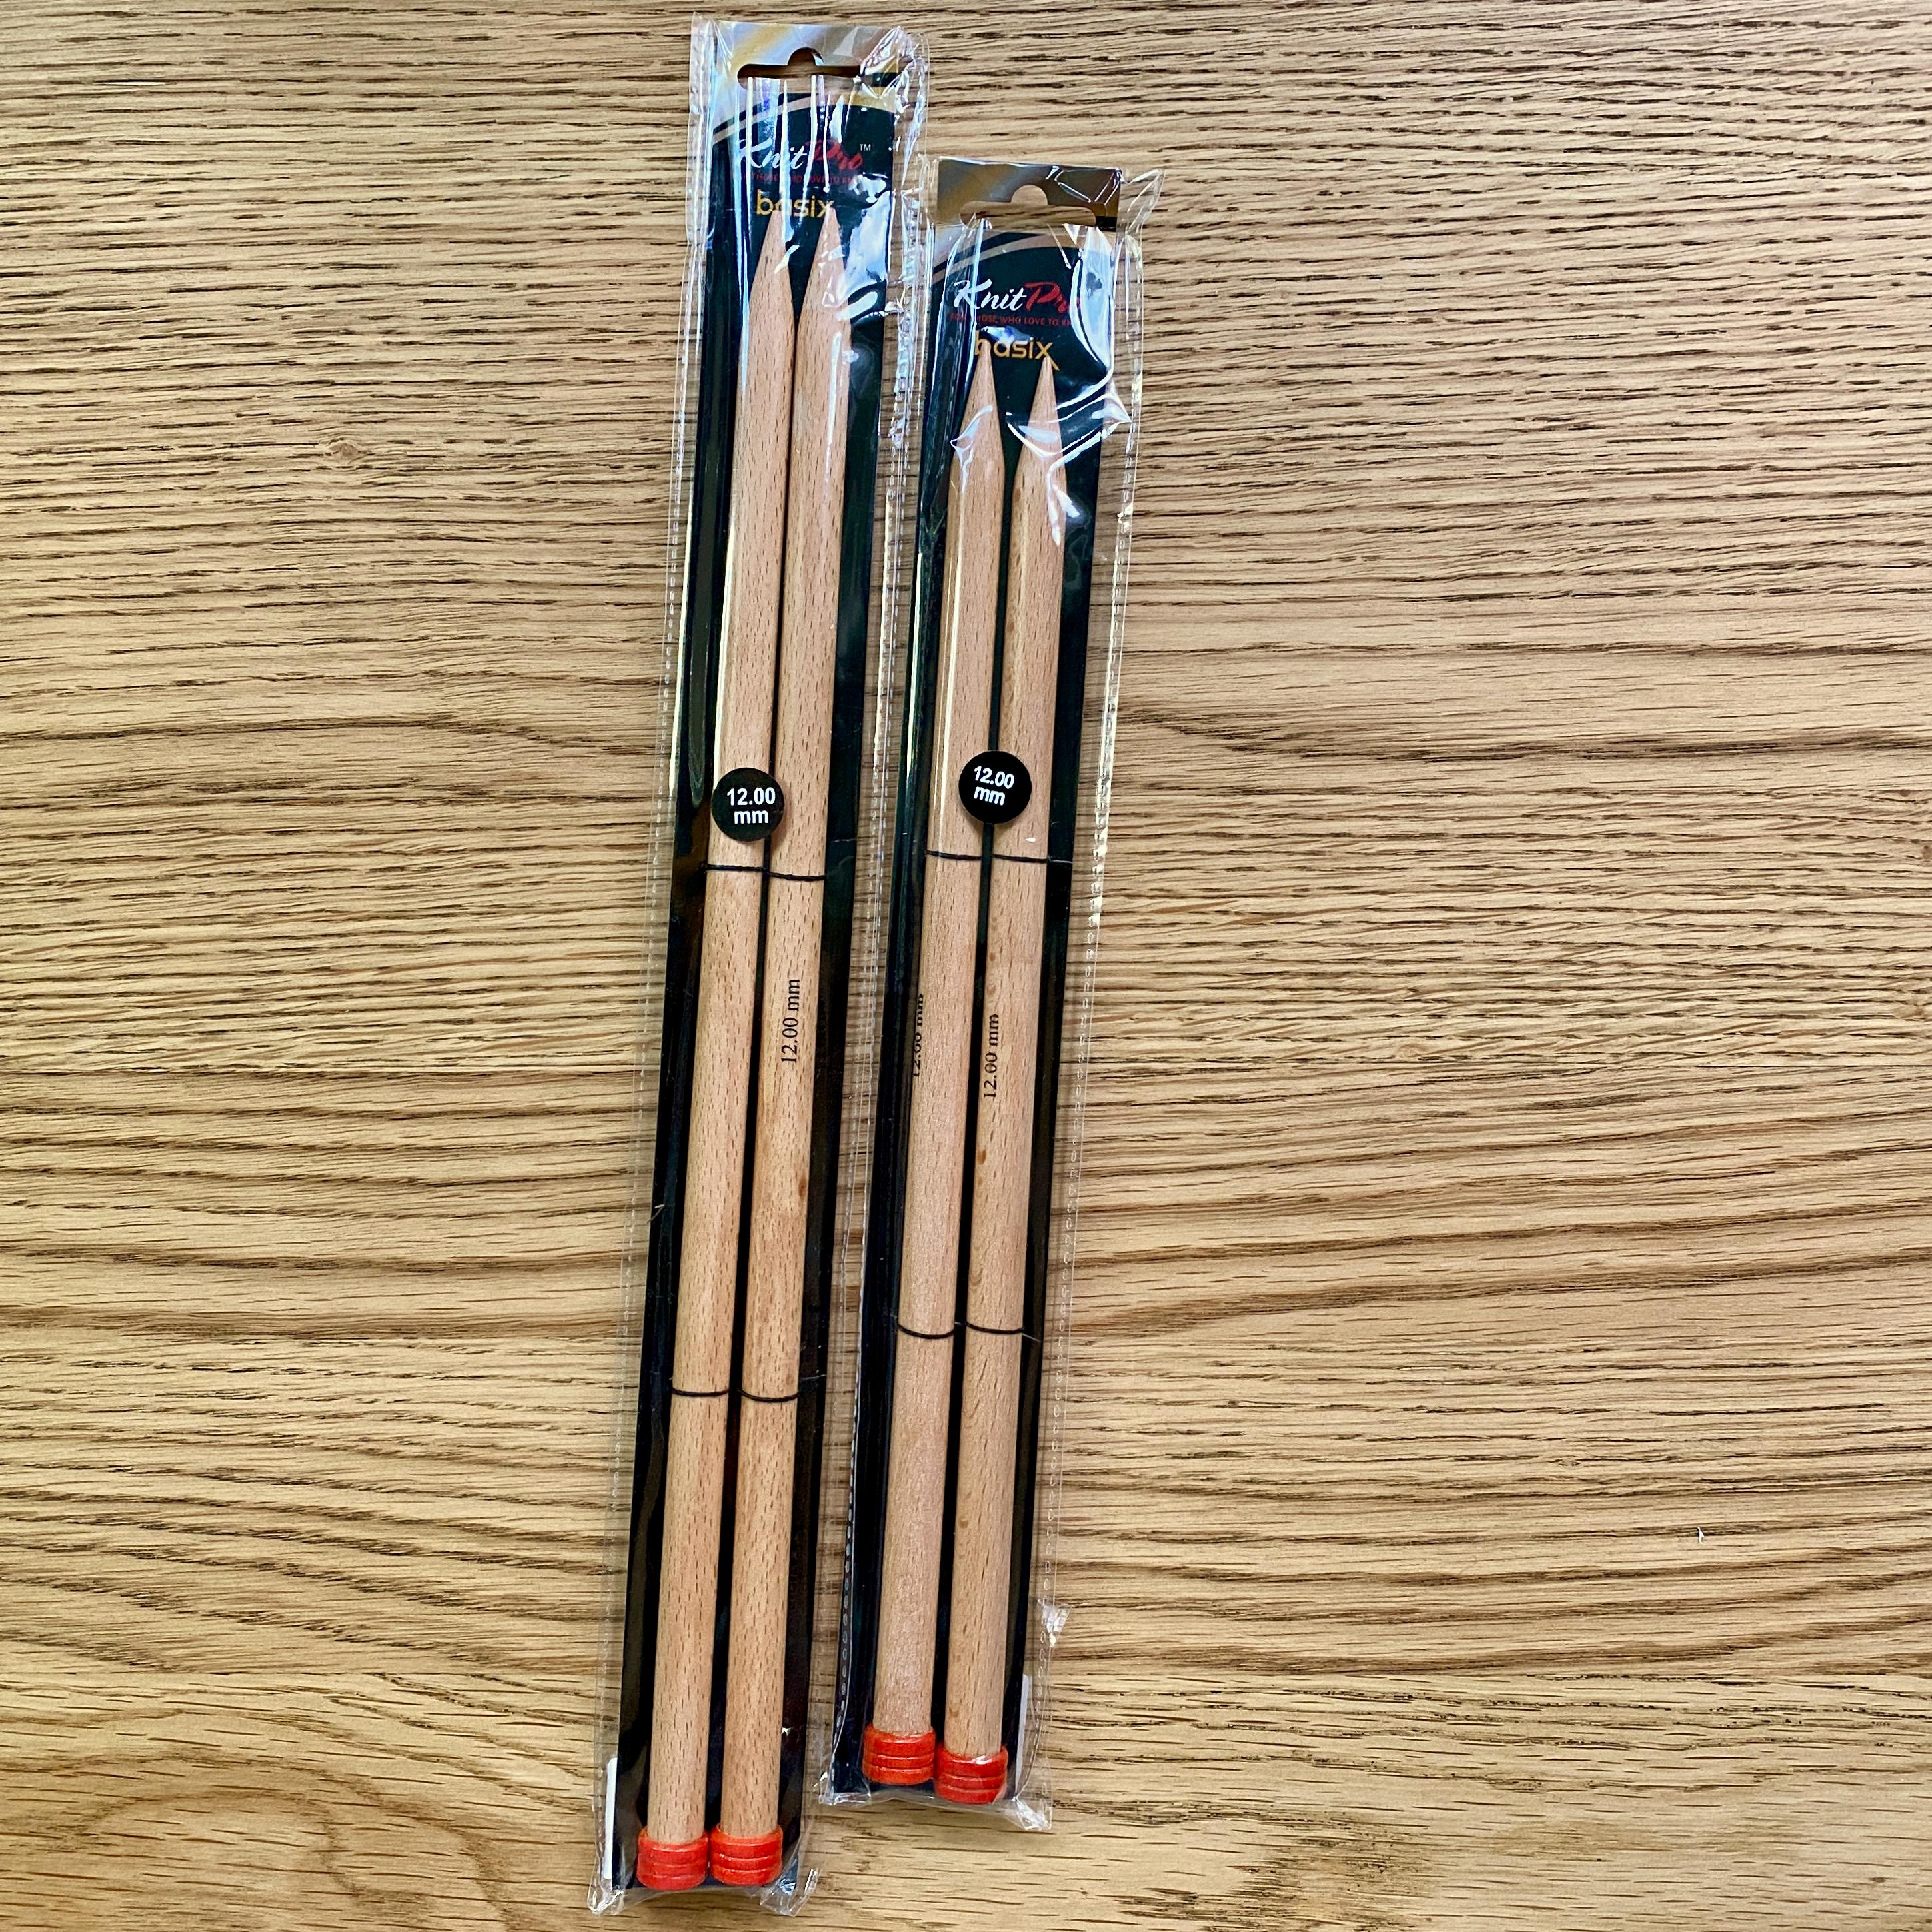 Knit Pro birch knitting needles 12mm size 35cm and 30cm long in black and red packaging